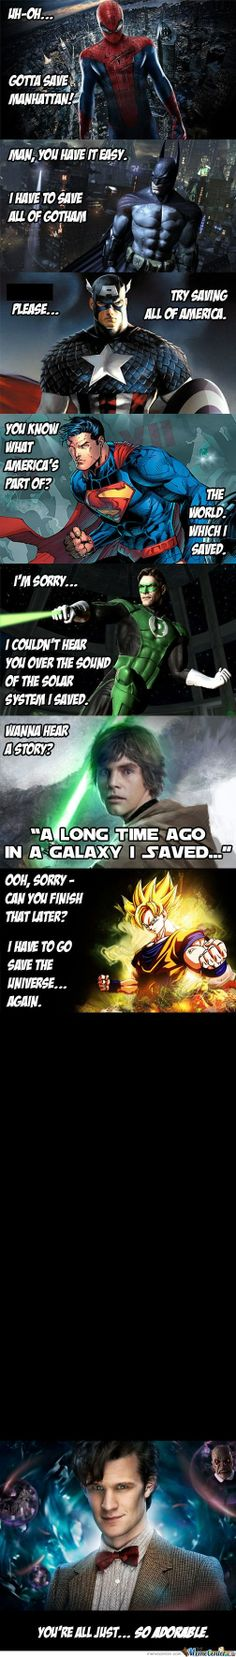 the Doctor, saving all of time and space!